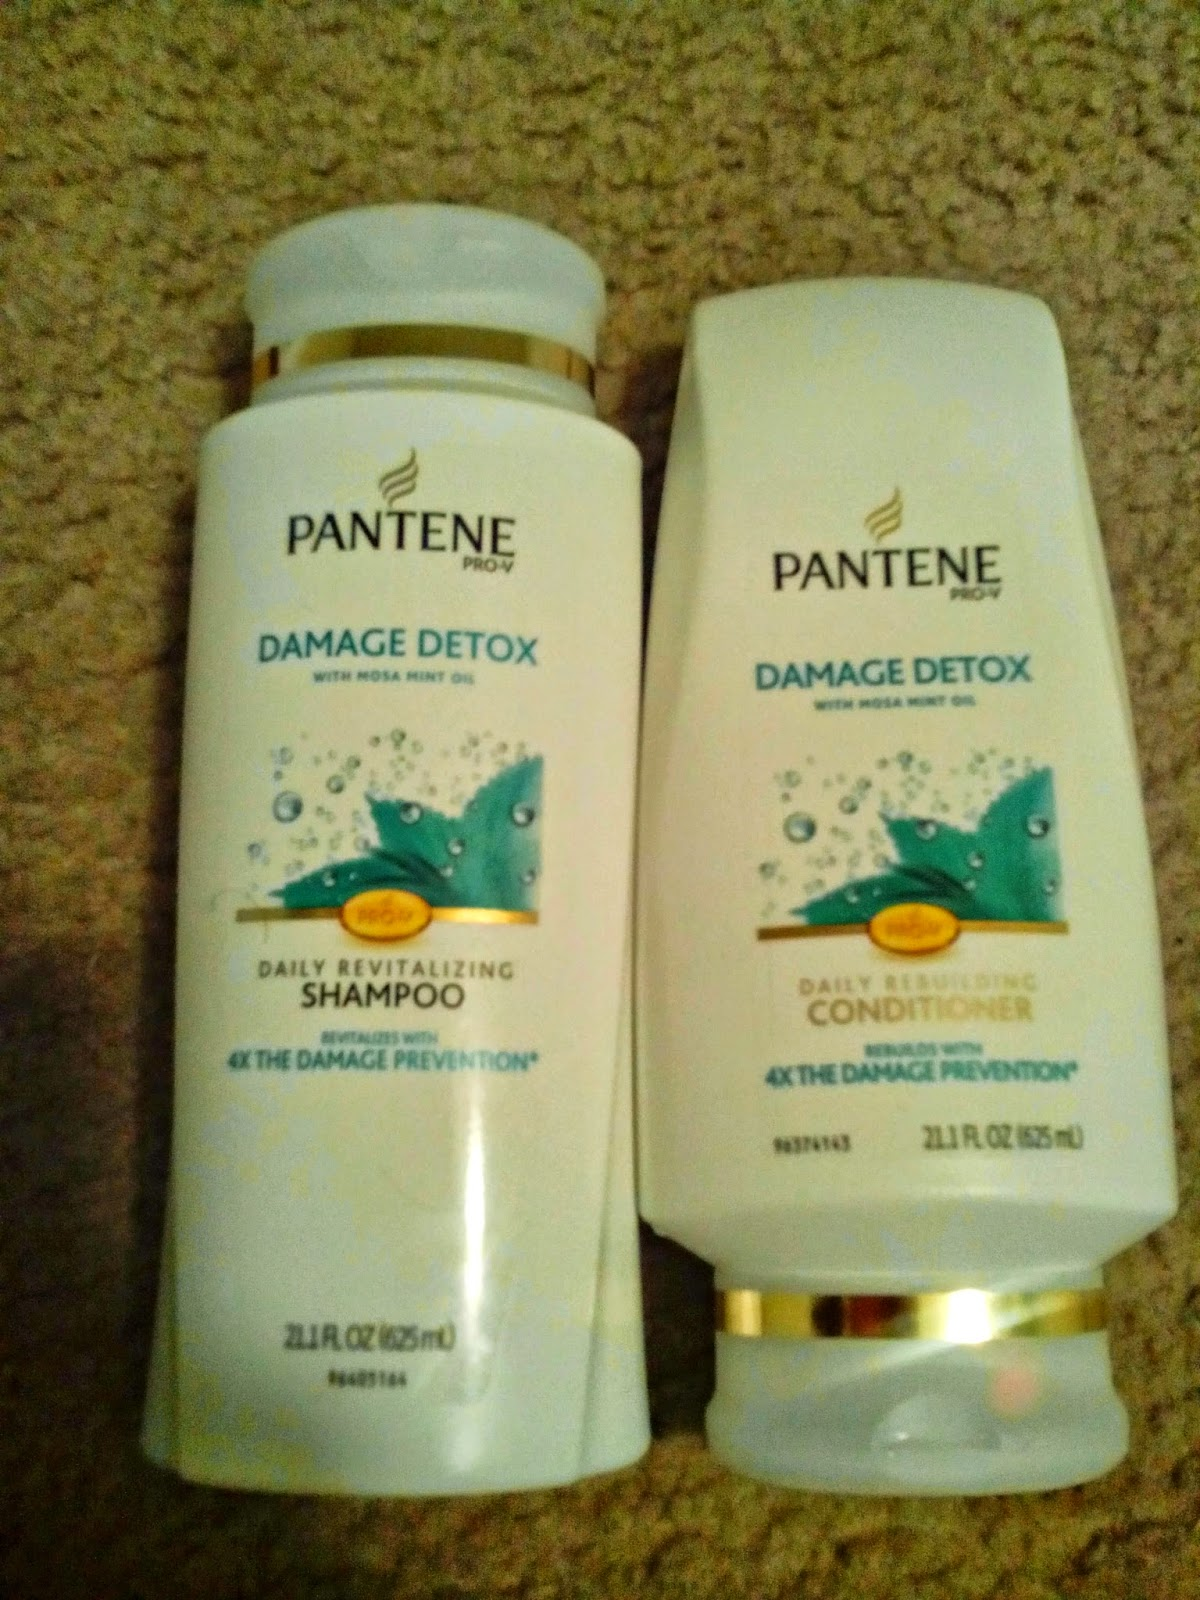 Pantene Damage Detox Revitalizing Shampoo, Pantene Damage Detox Rebuilding Conditioner, review, first impression